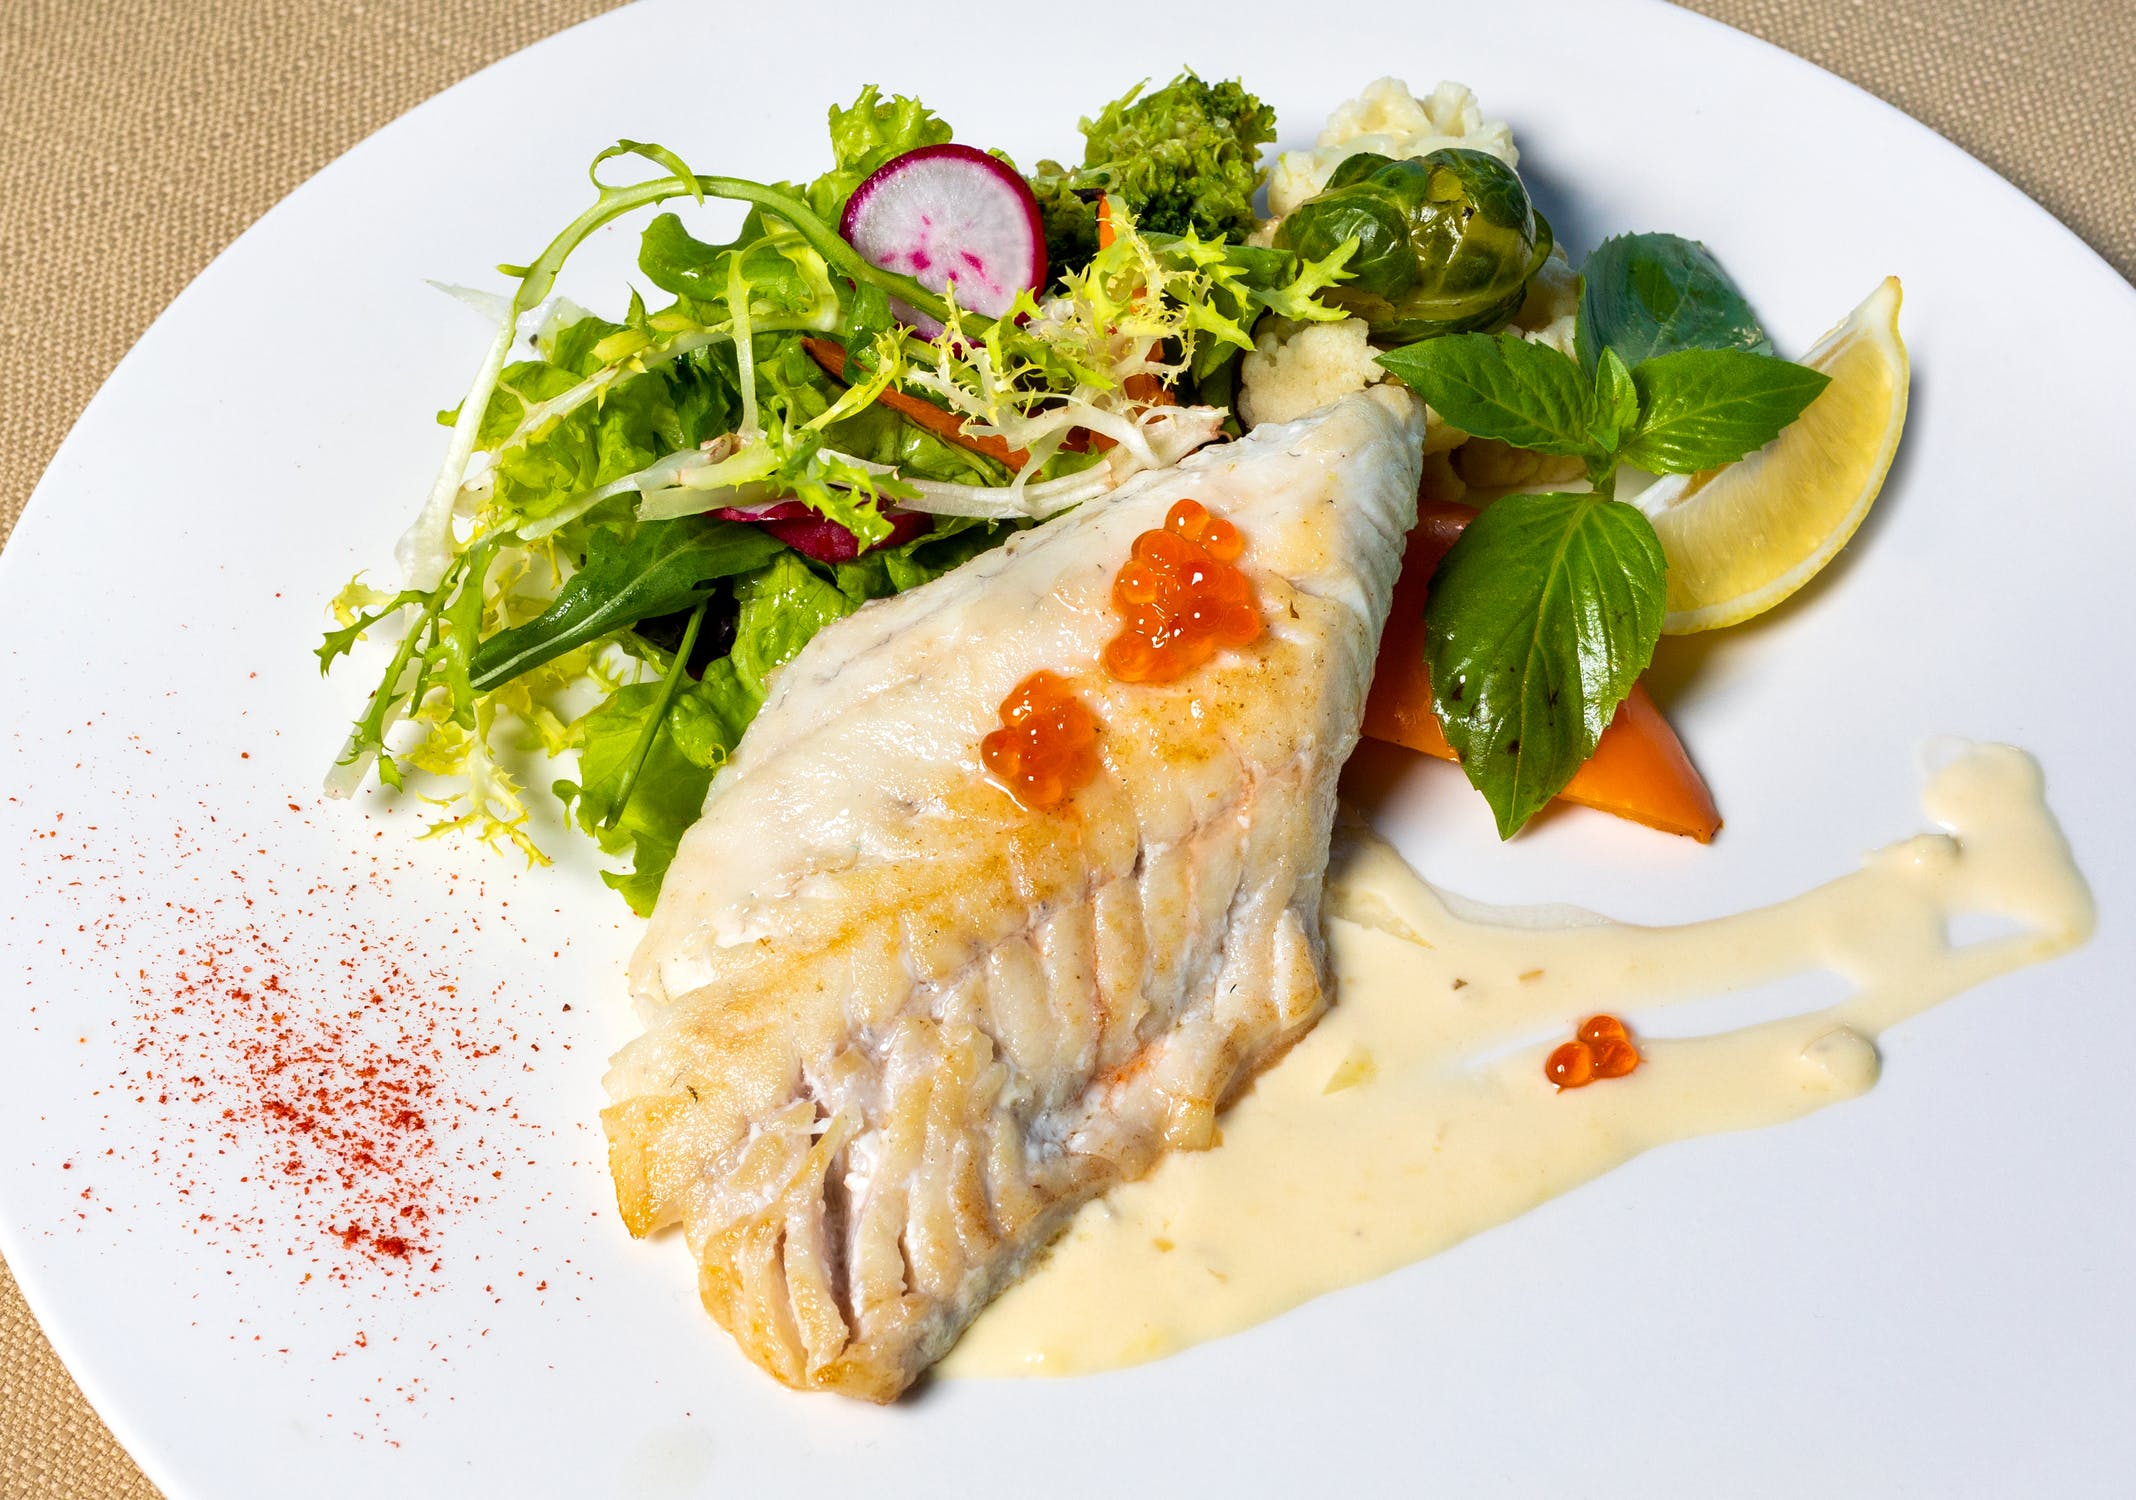 cod on a plate with salad and fish eggs.